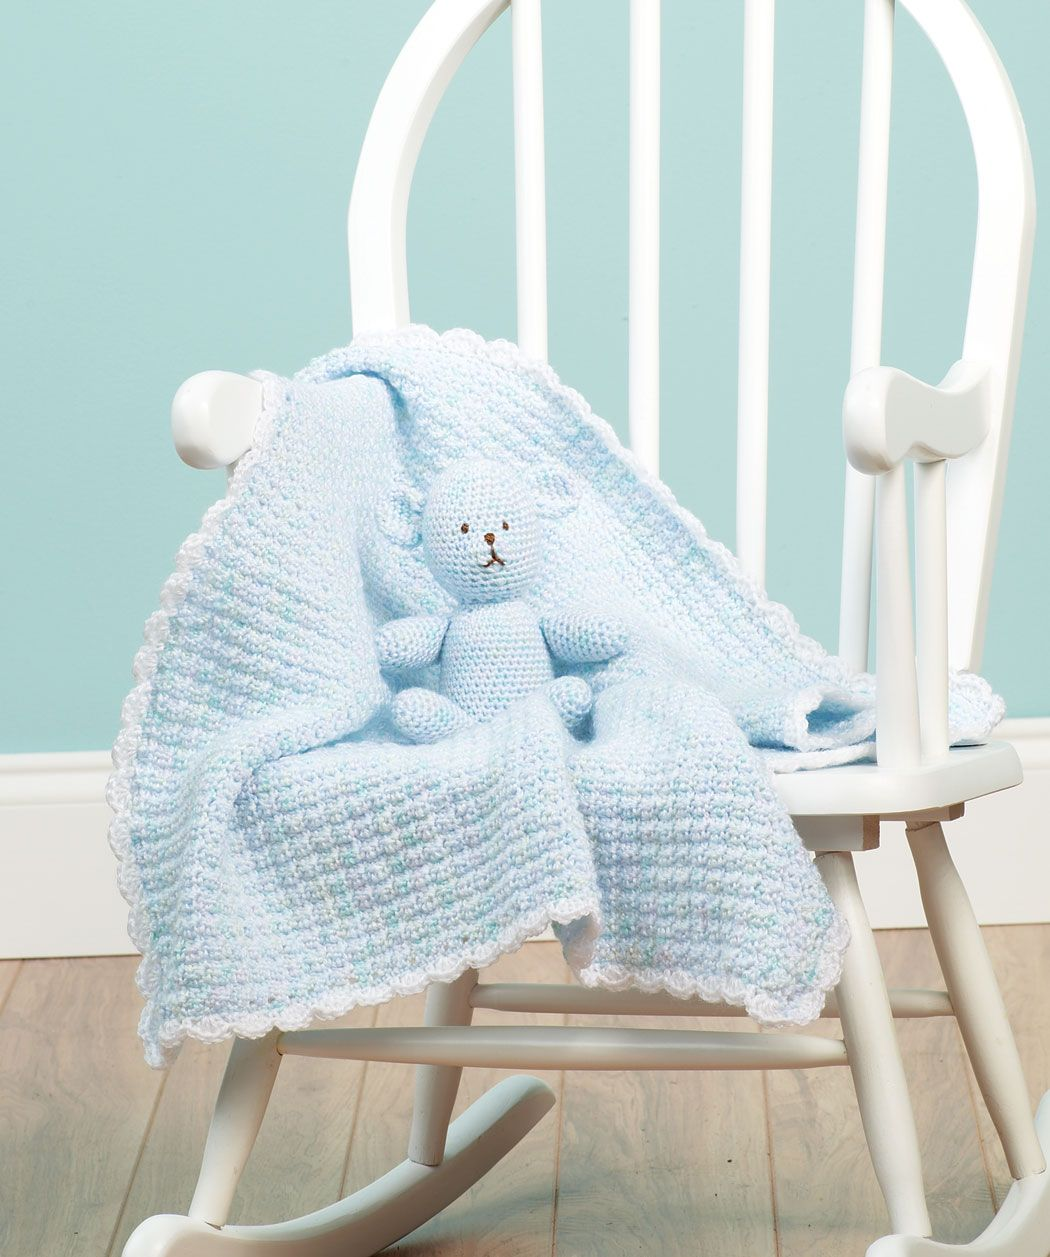 Crochet baby blanket and matching teddy bear. Adorable!